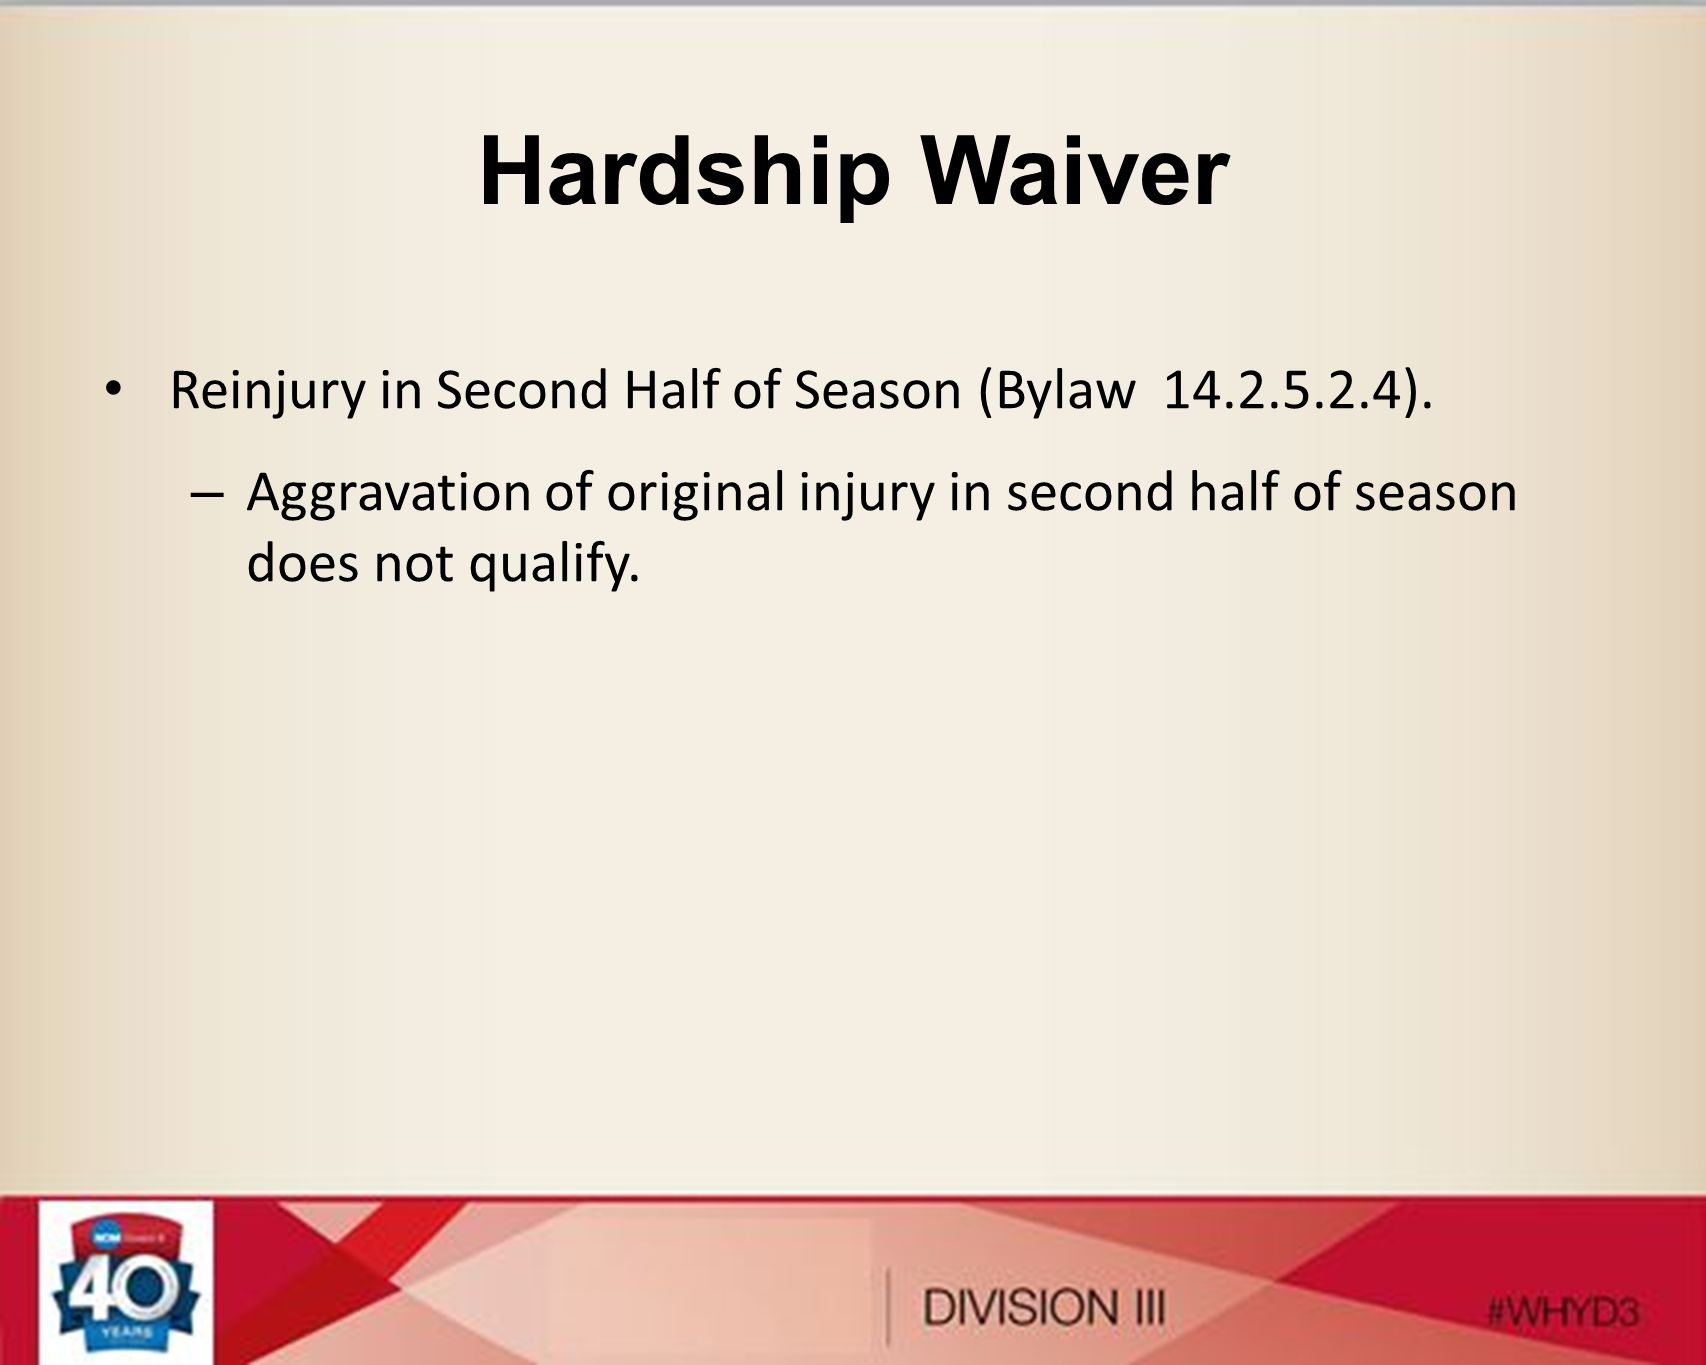 Hardship Waiver Reinjury in Second Half of Season (Bylaw 14.2.5.2.4).